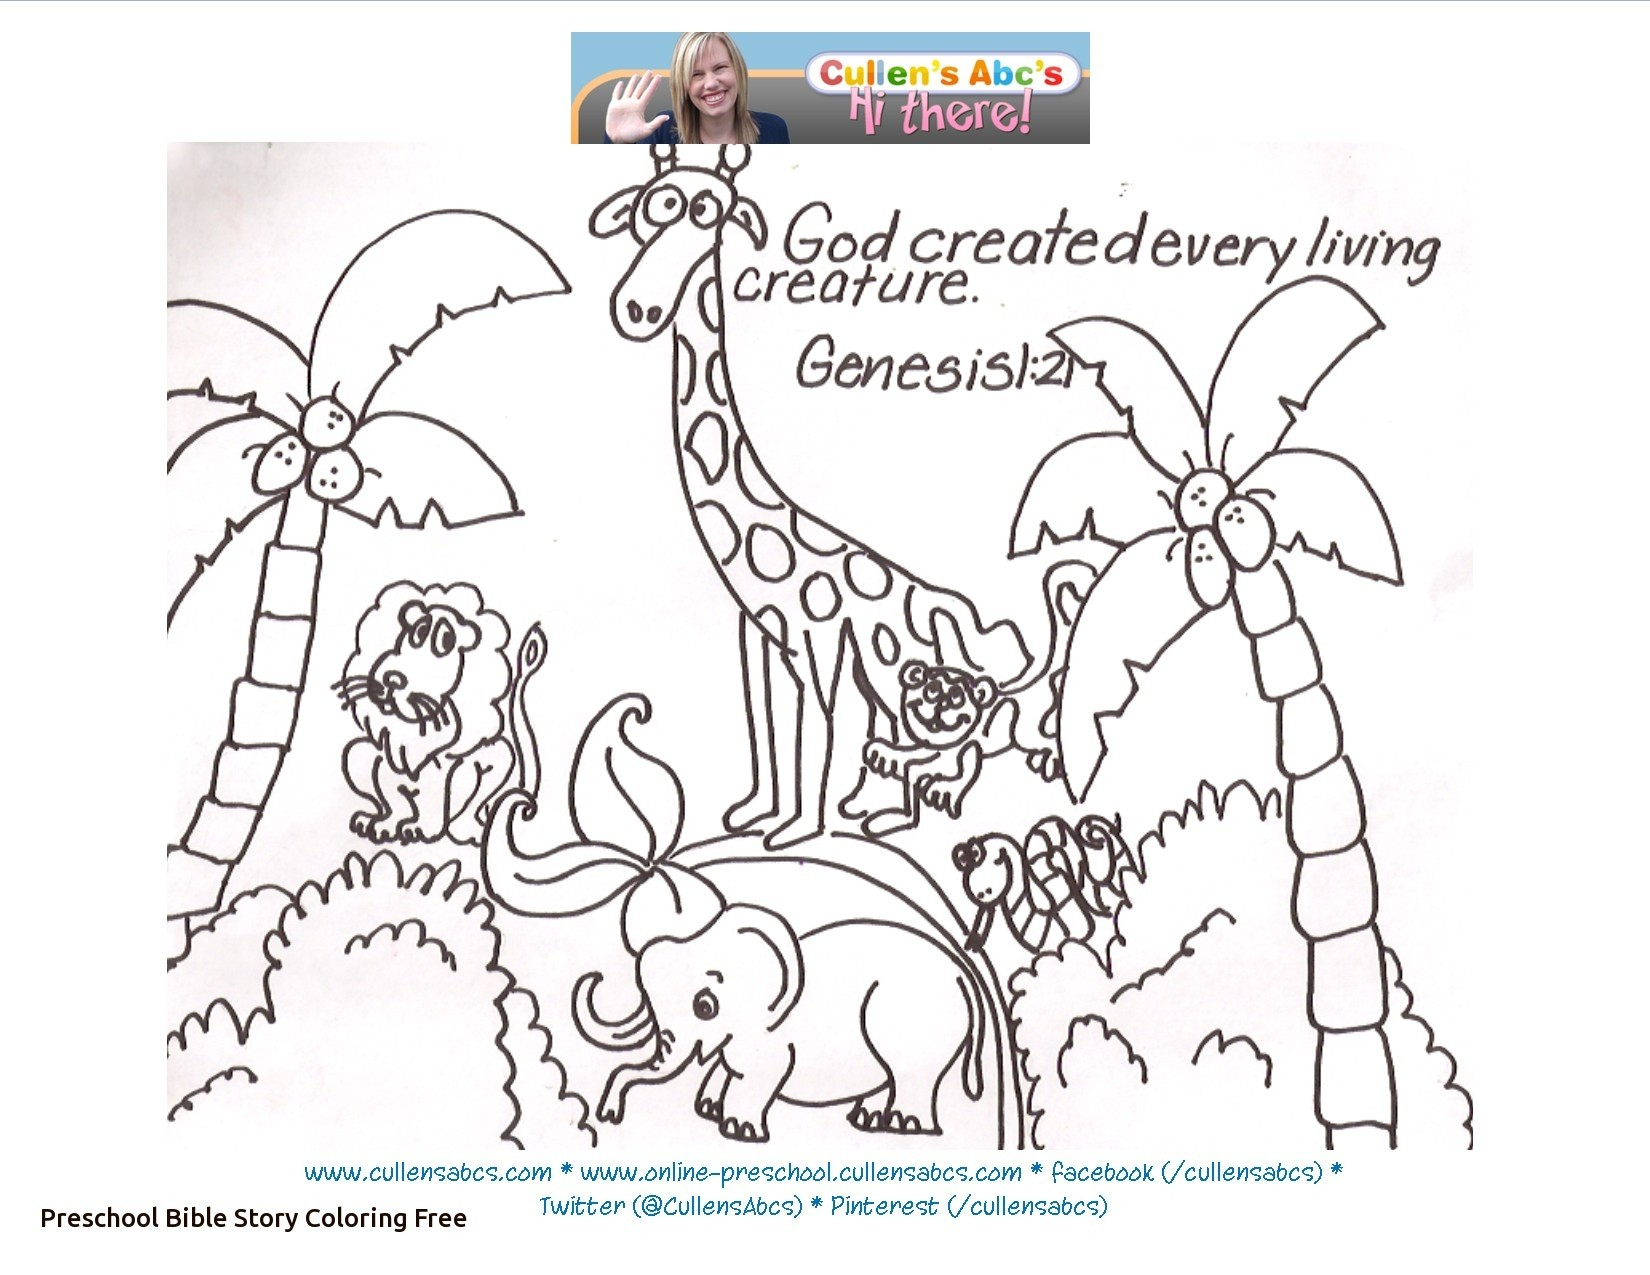 640 Top Coloring Pages For Creation Bible Story Download Free Images